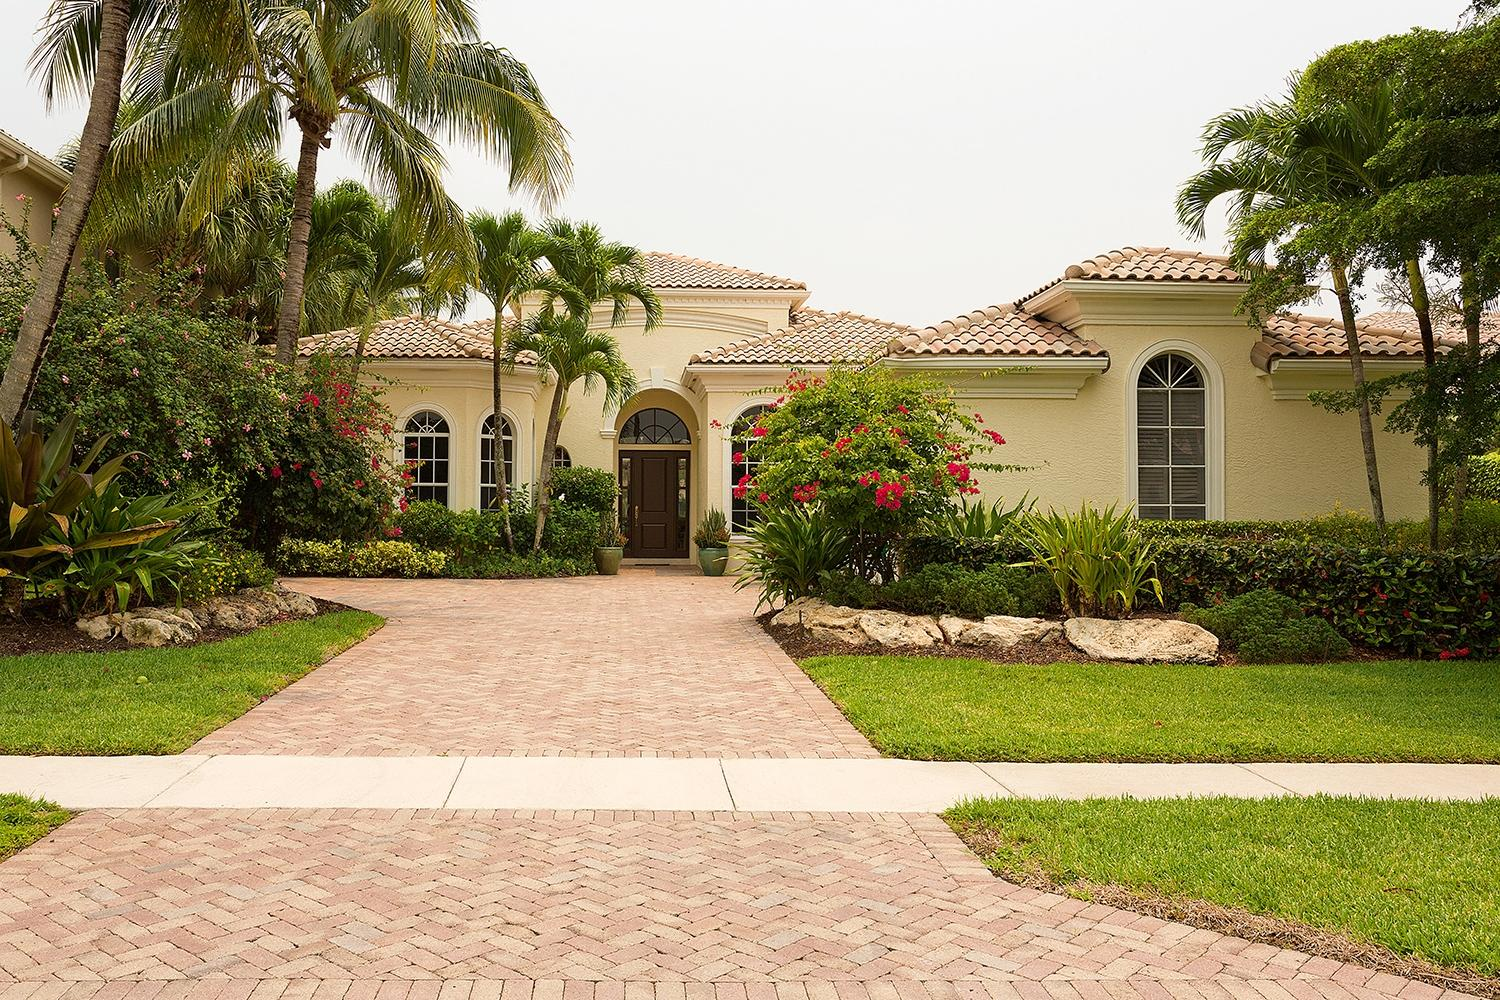 2940 Bent Cypress Road, Wellington, Florida 33414, 3 Bedrooms Bedrooms, ,3.2 BathroomsBathrooms,Single Family,For Sale,Palm Beach Polo,Bent Cypress,RX-10547470